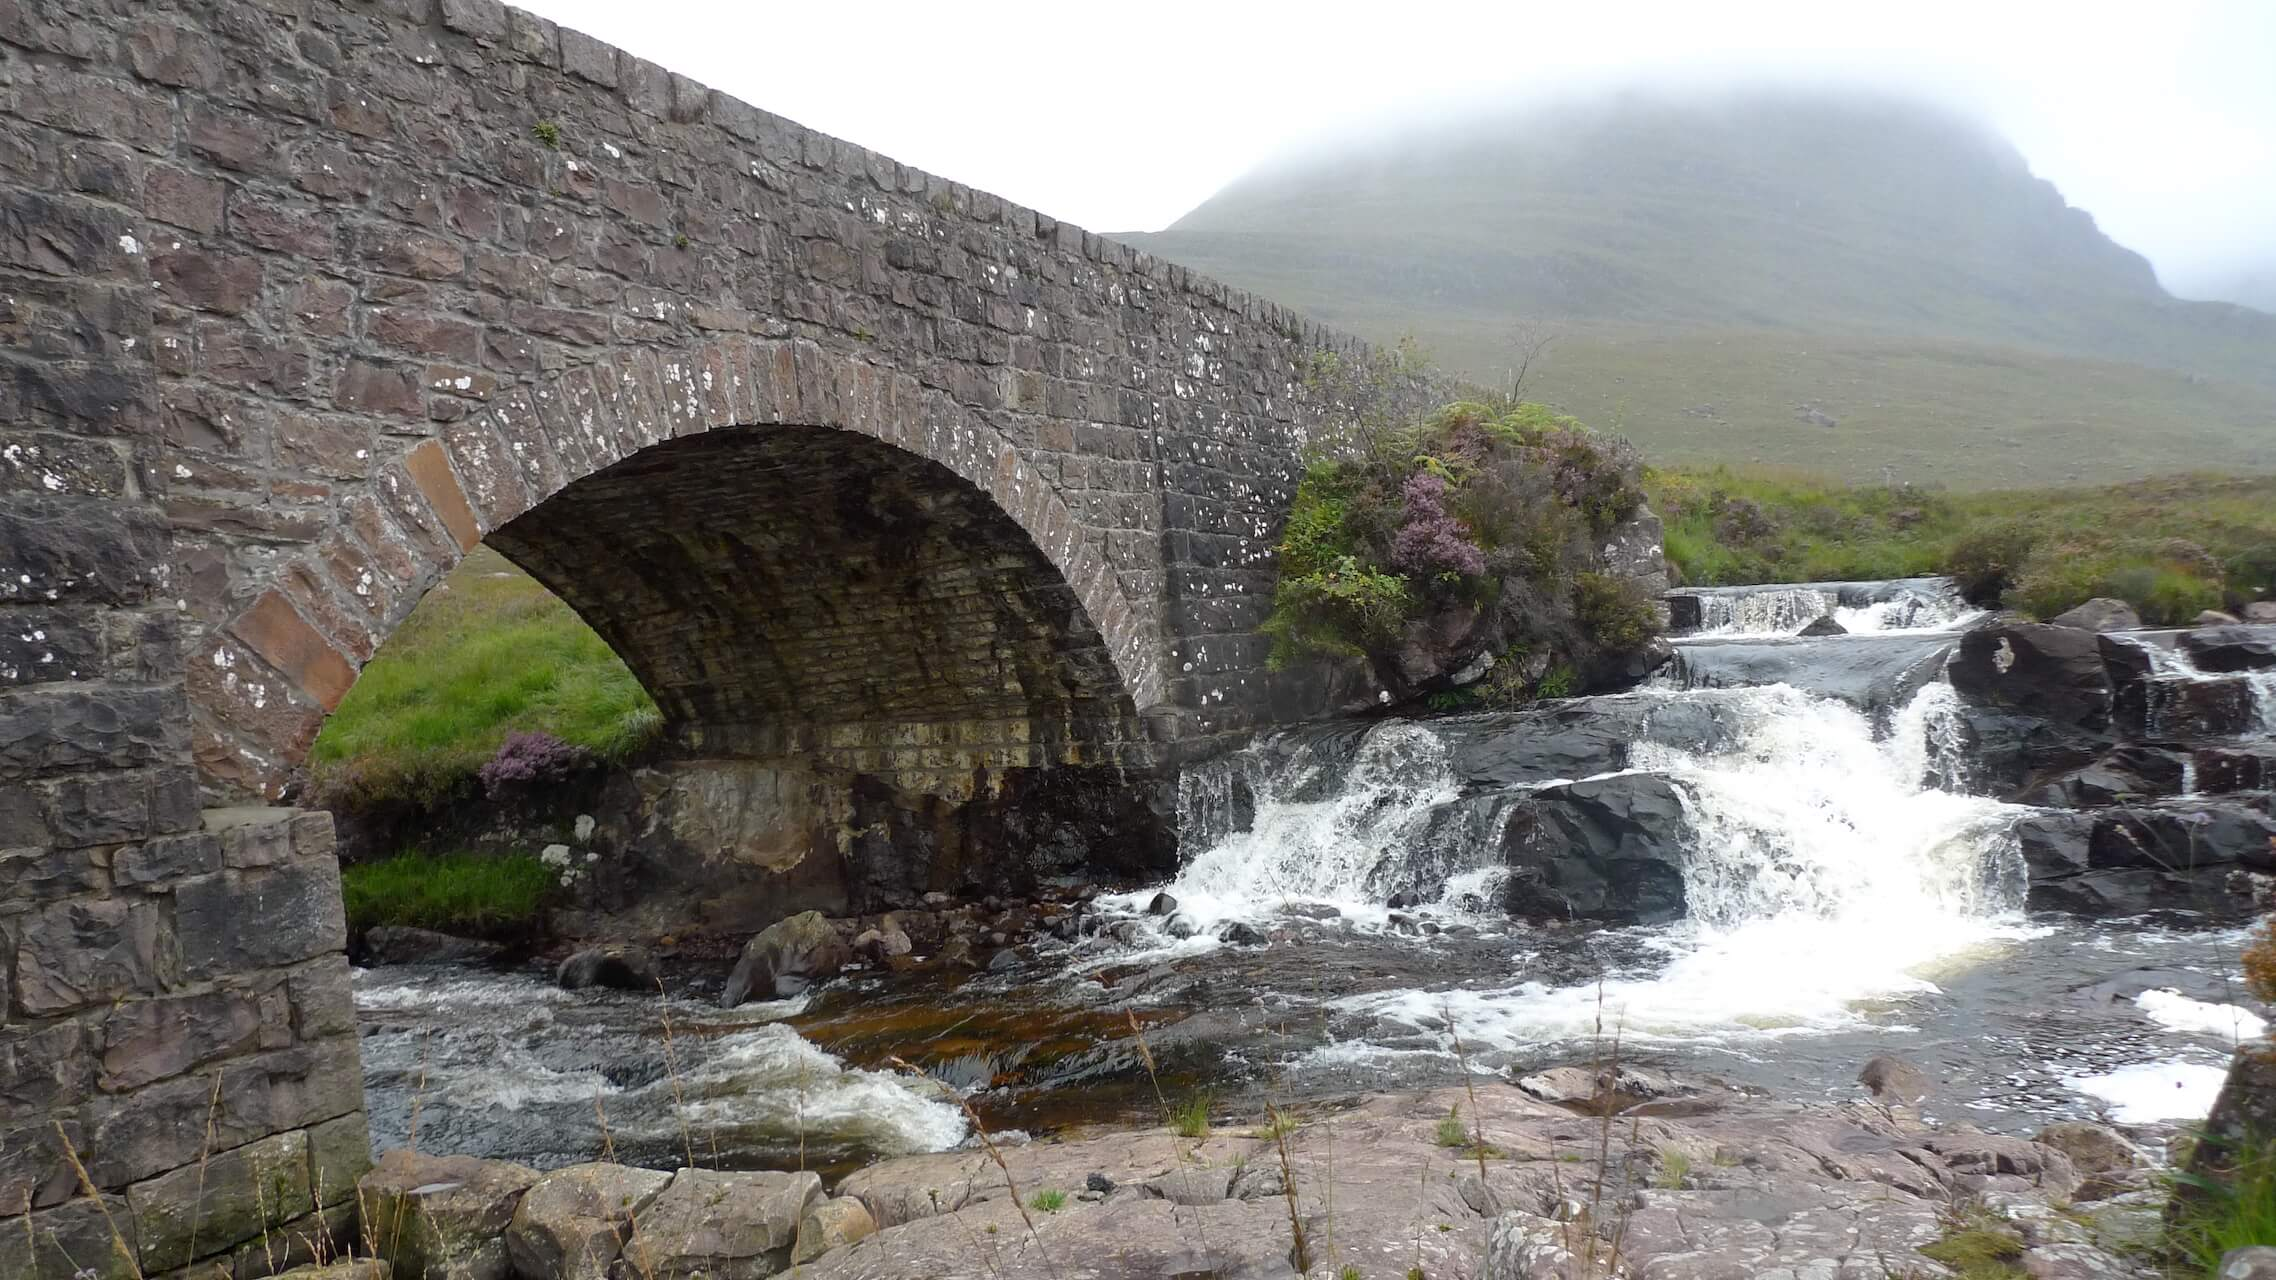 Russel Burn Bridge at the foot of the Bealach na Bá